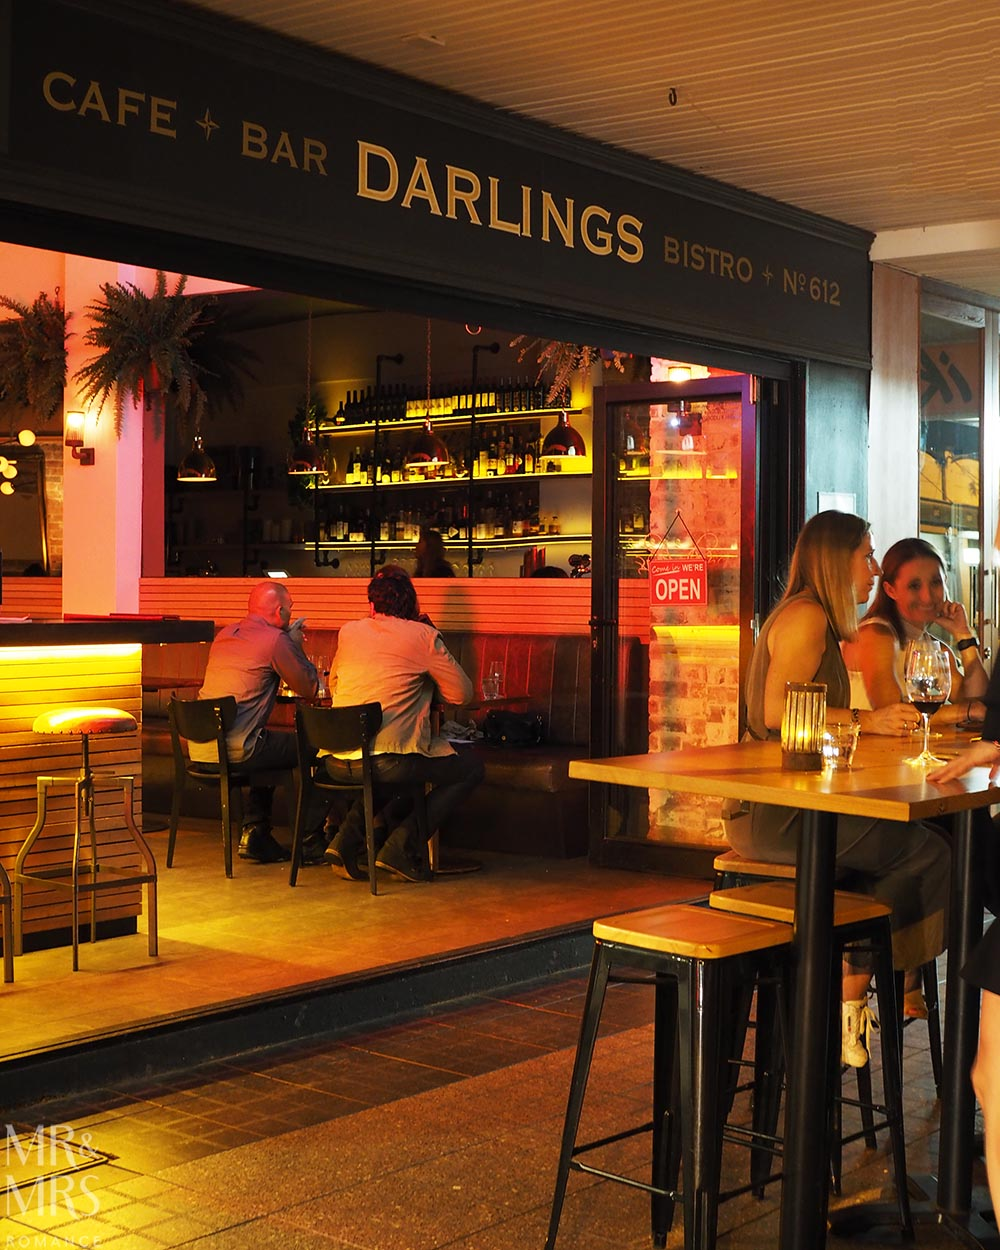 Darlings Bistro, Cafe and Bar, Rozelle frontage